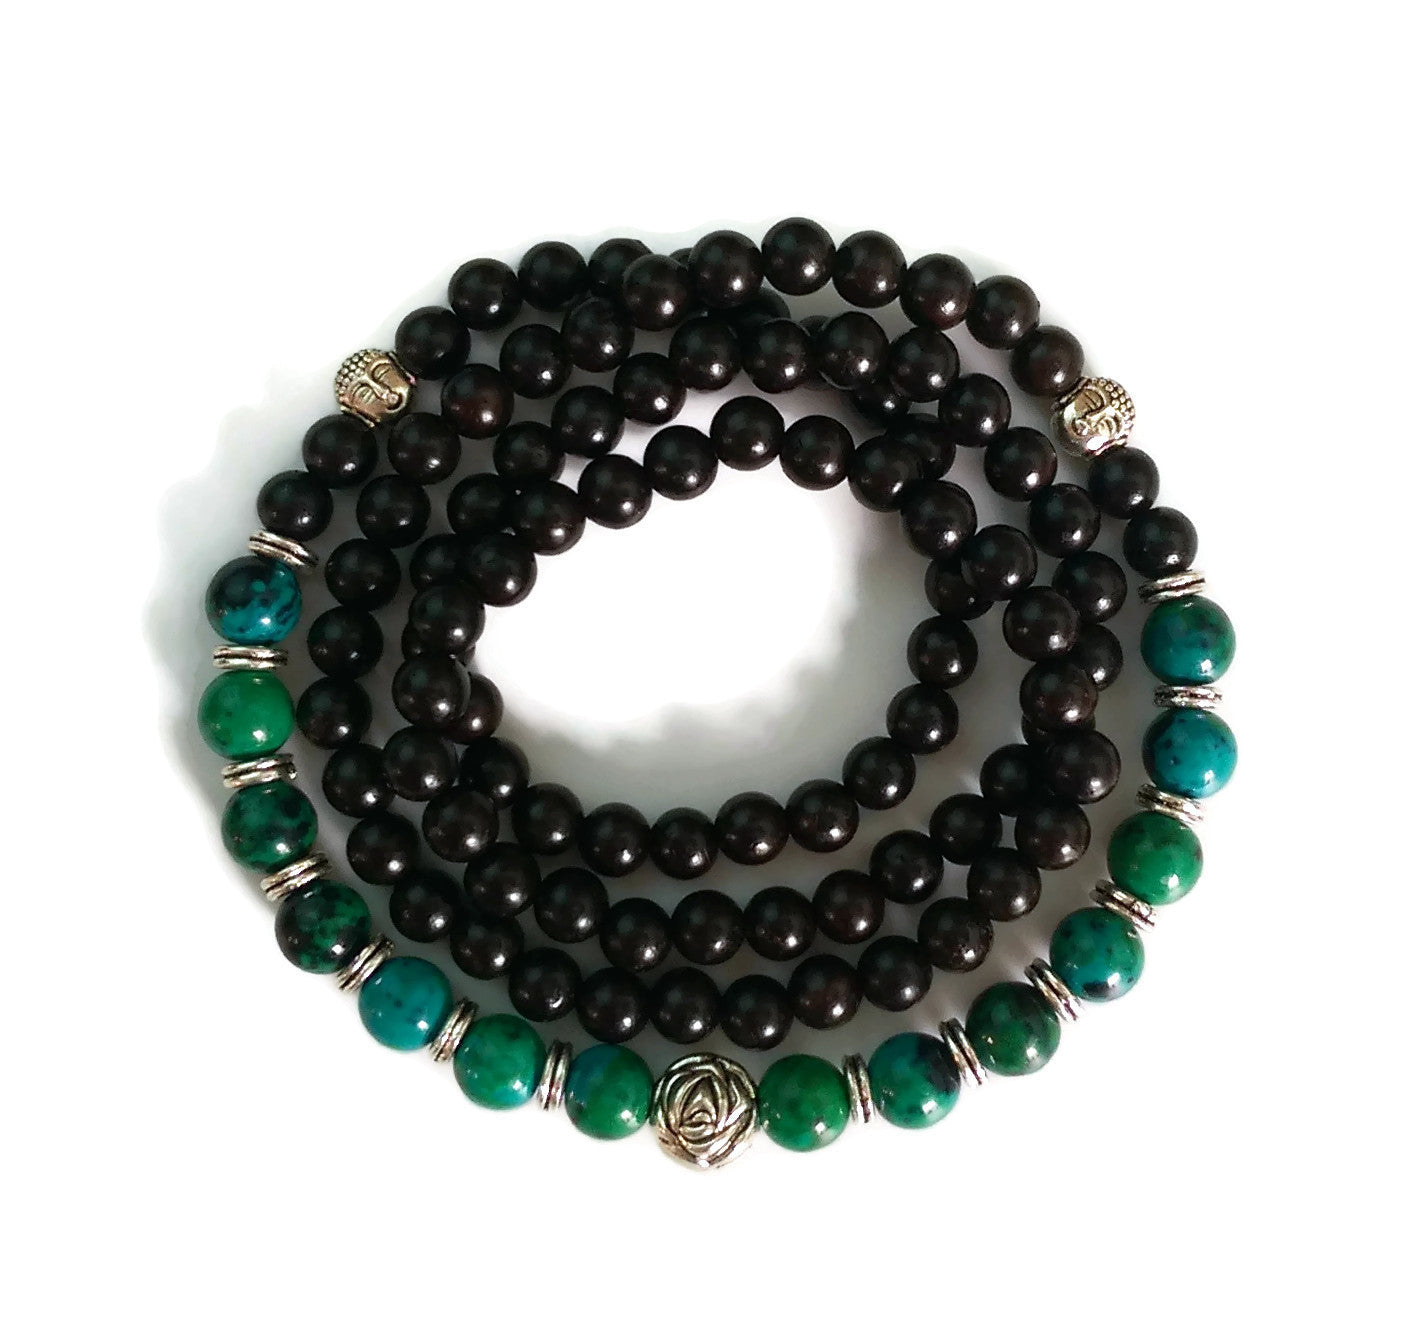 Copy of 6mm Ebony Wood and 8mm Phoenix Stone Wrist Wrap Mala Bracelet with Silver Lotus